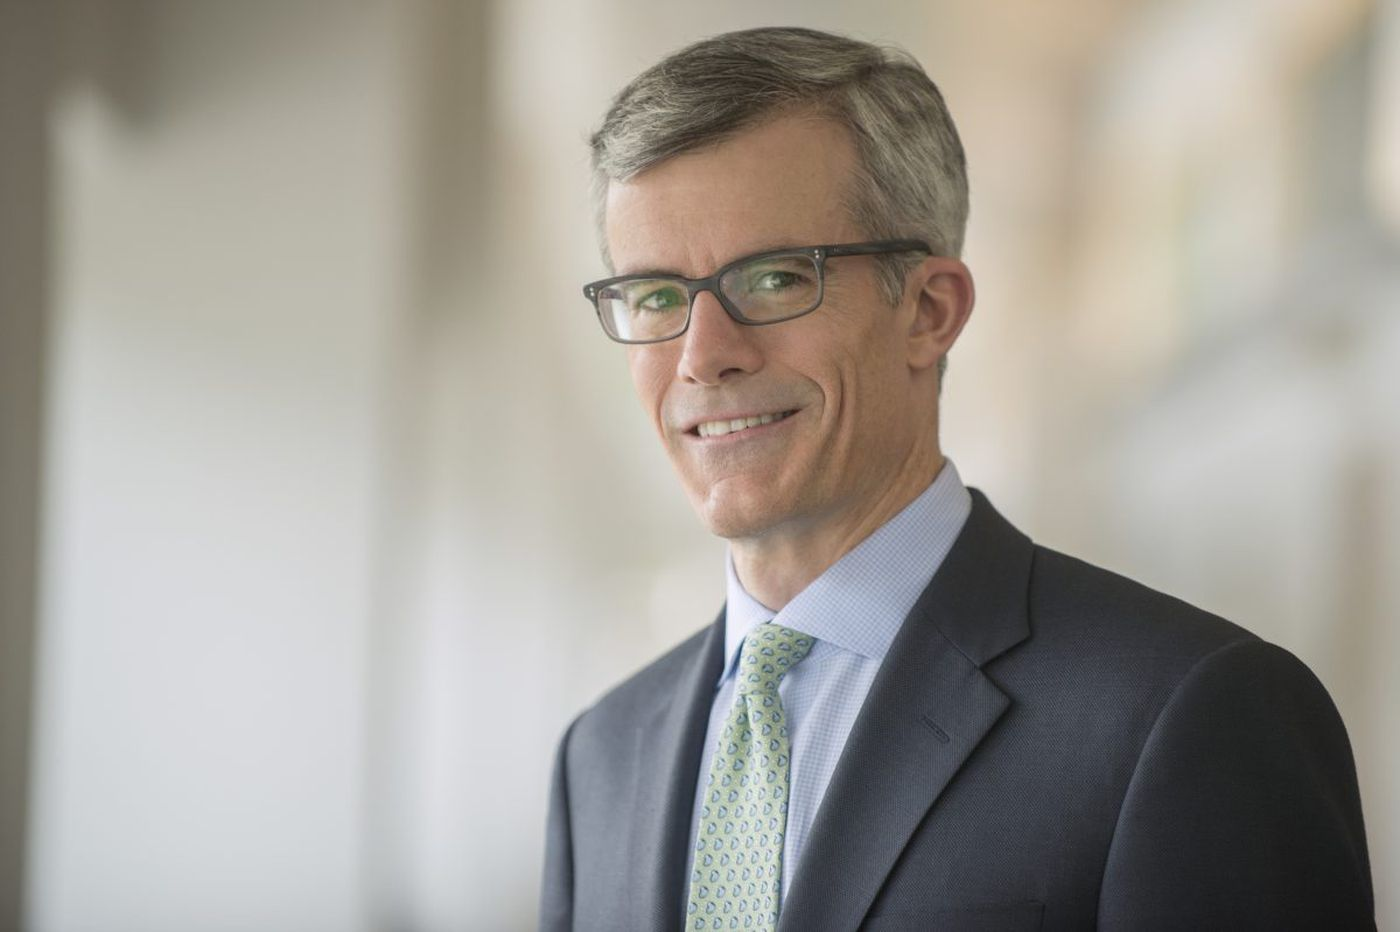 New CEO Tim Buckley: To run Vanguard, 'you have to be willing not to be a billionaire'